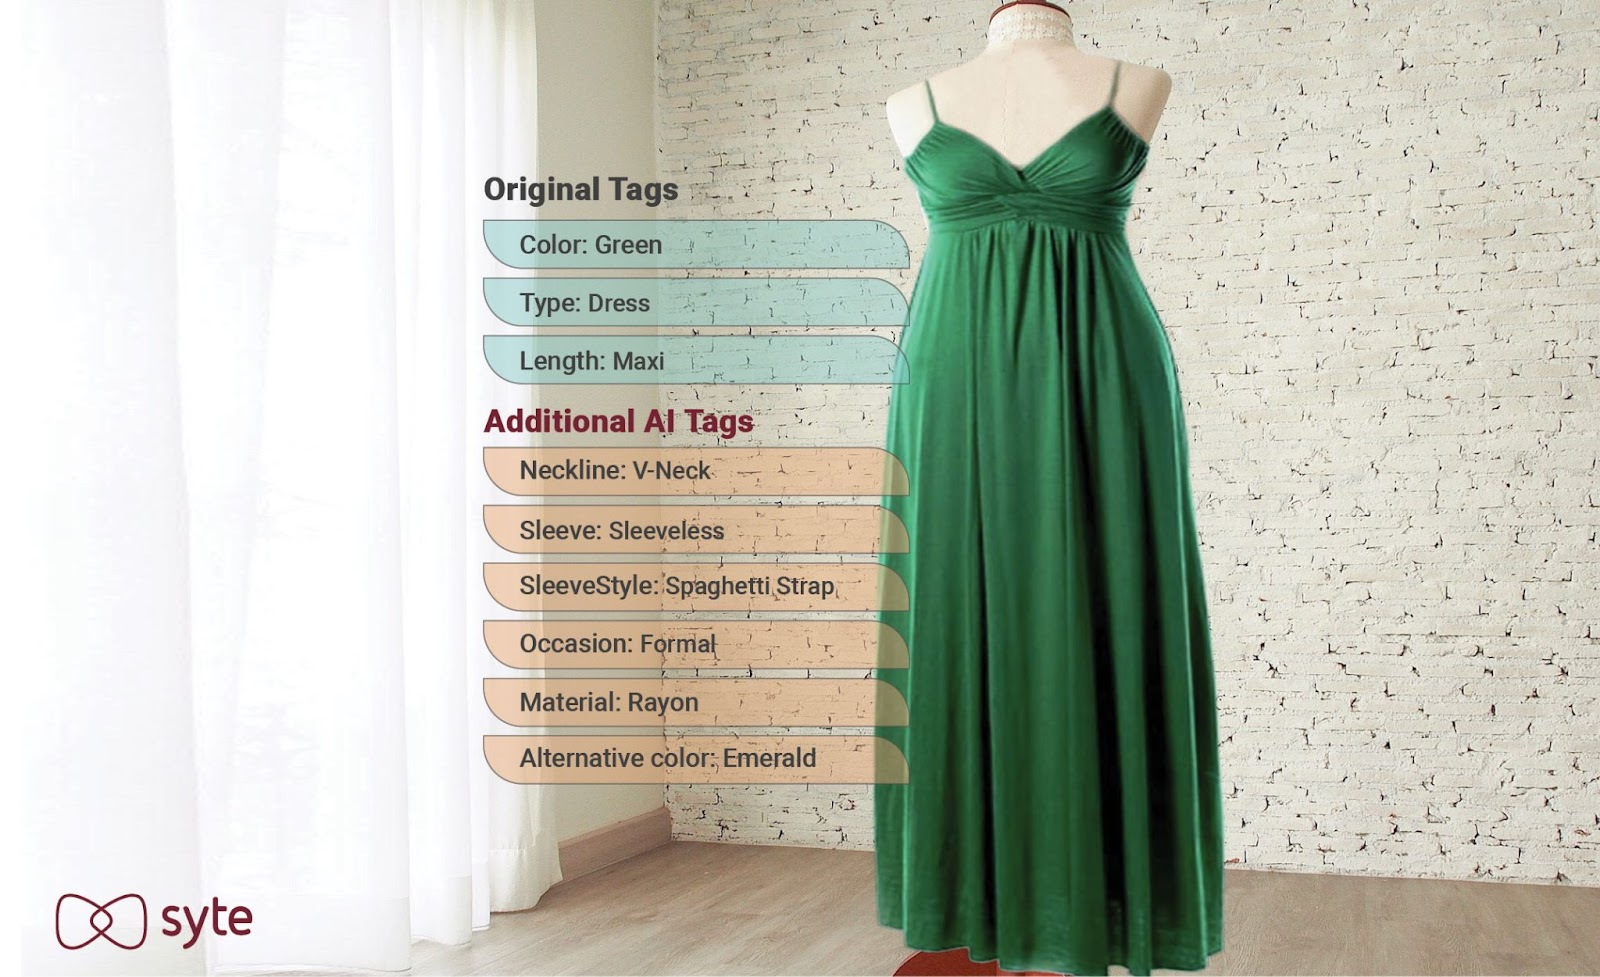 Discovery design technology: AI-powered product tags describe a green maxi dress